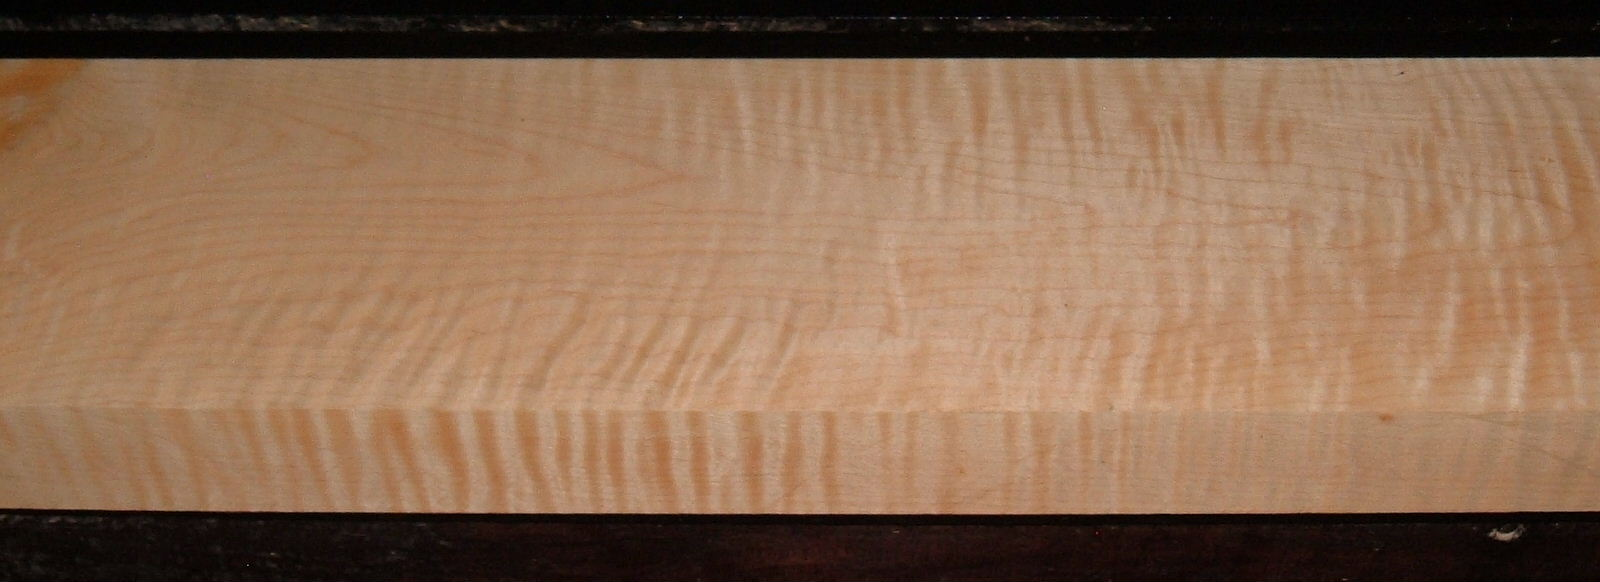 M2003-242, 1-3/4x6-3/8x46, Figure Curly Tiger Maple